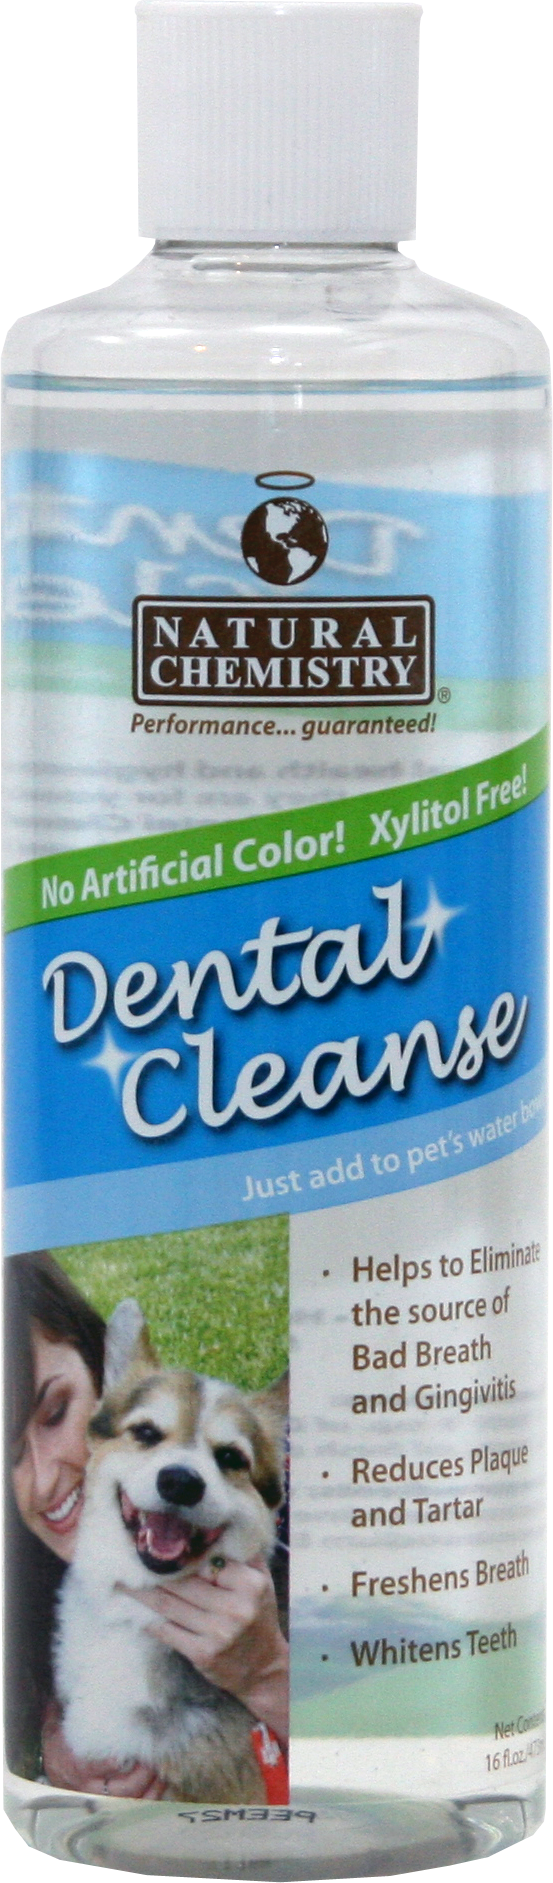 11135 Dental Cleanse 16oz.png